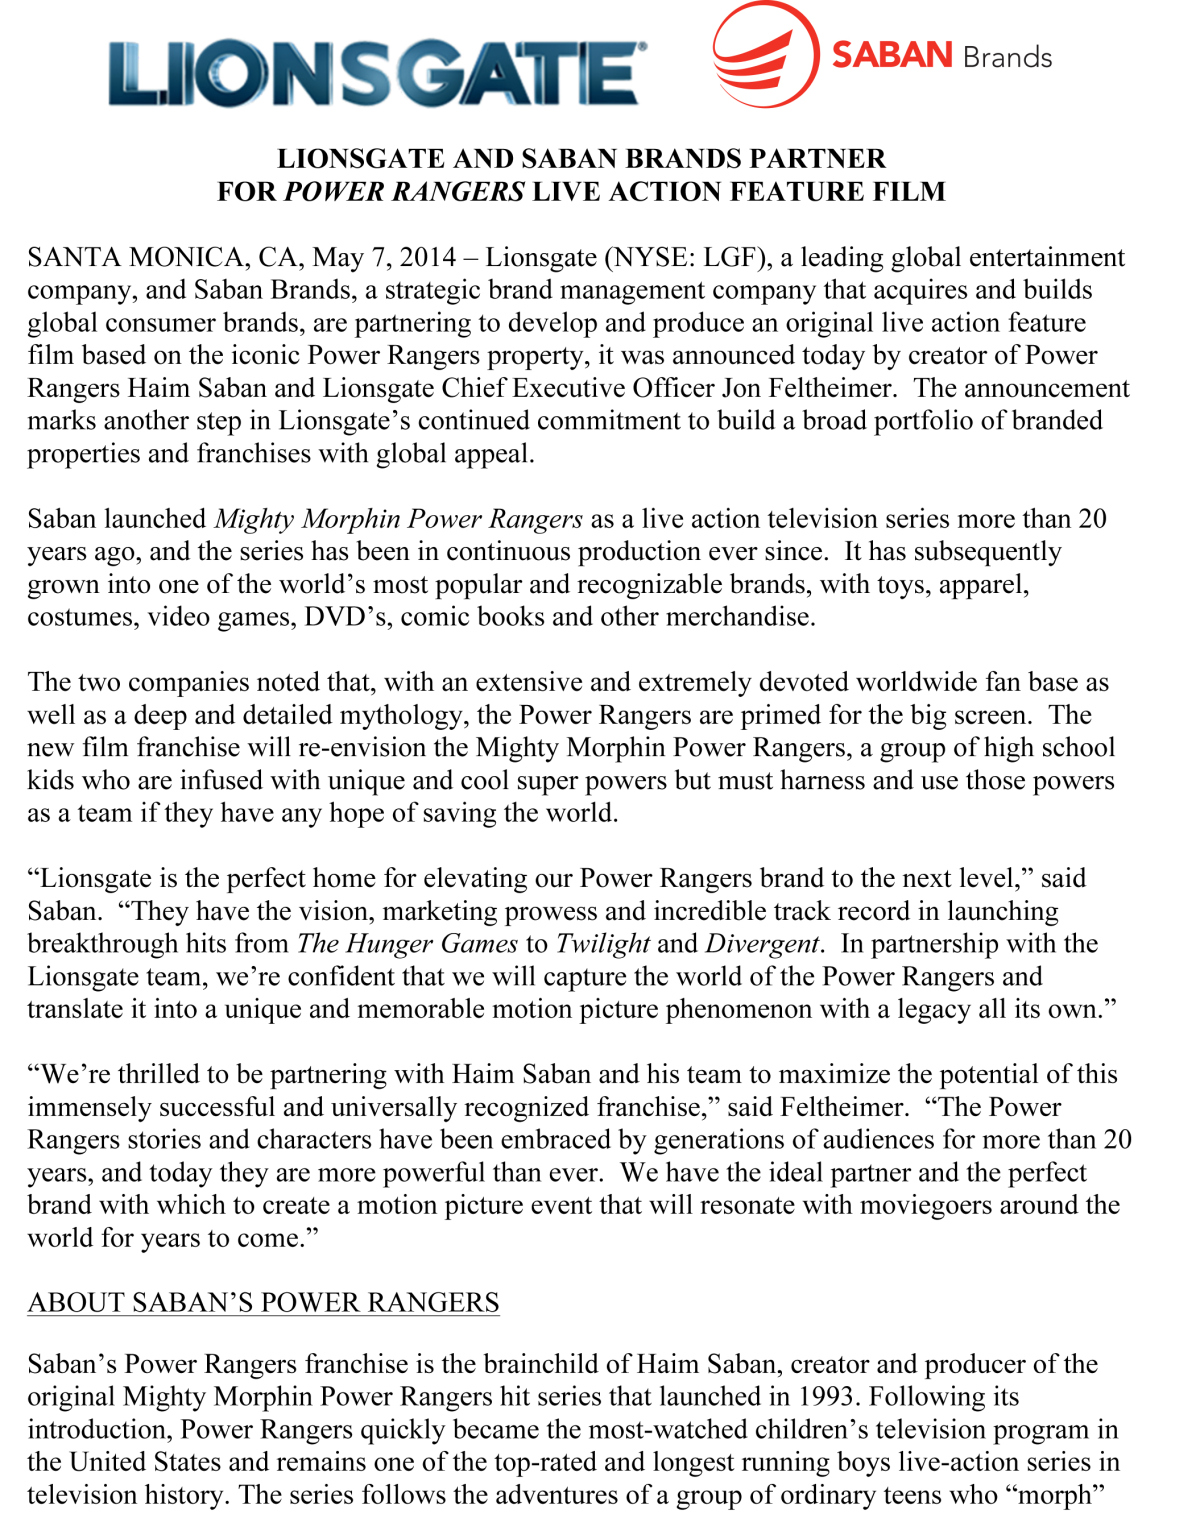 microsoft word lionsgate saban press release docx the